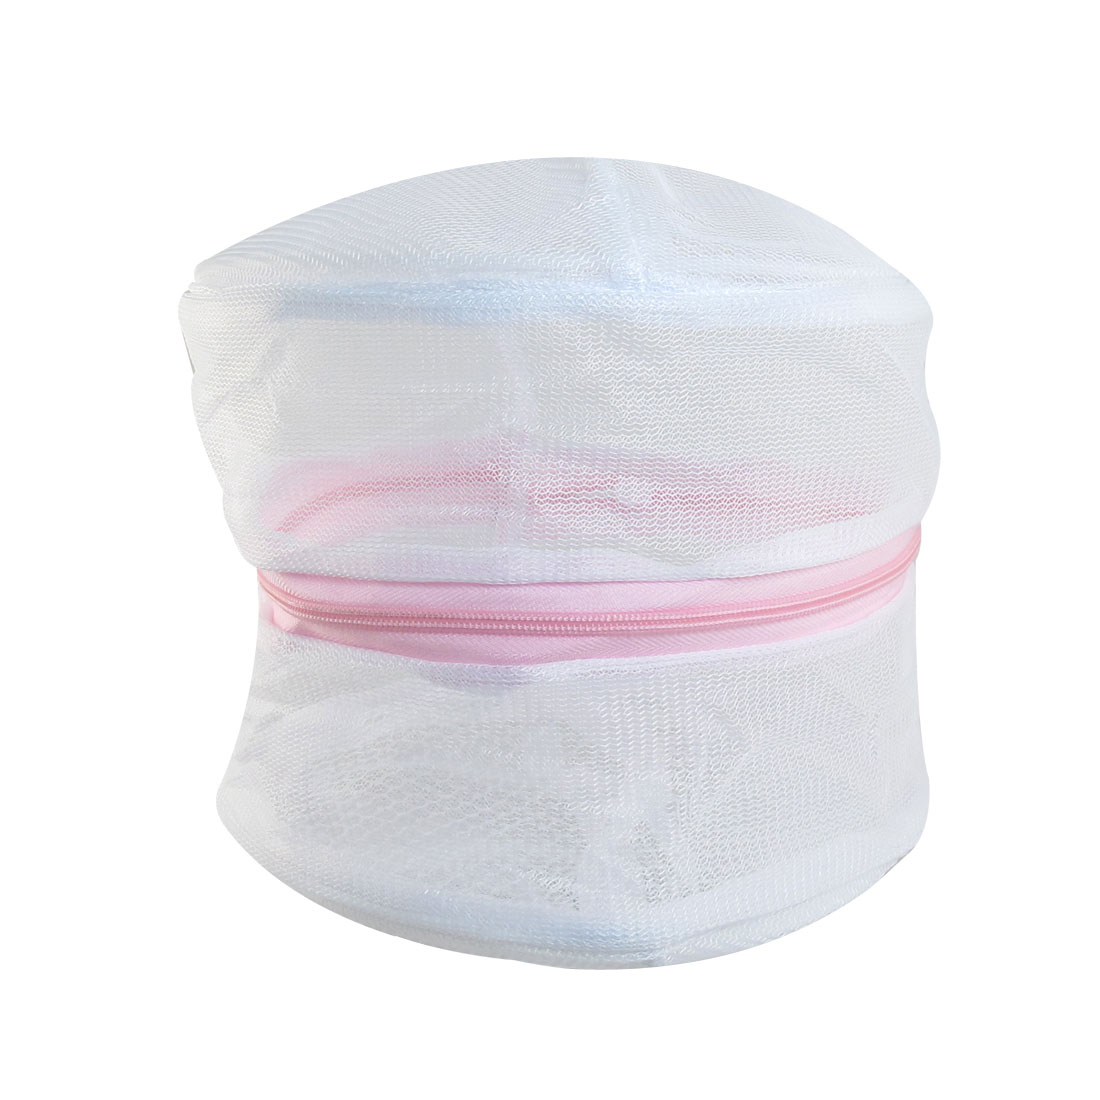 Pink Zipper Mesh Laundry Underwear Bra Washing Bag White